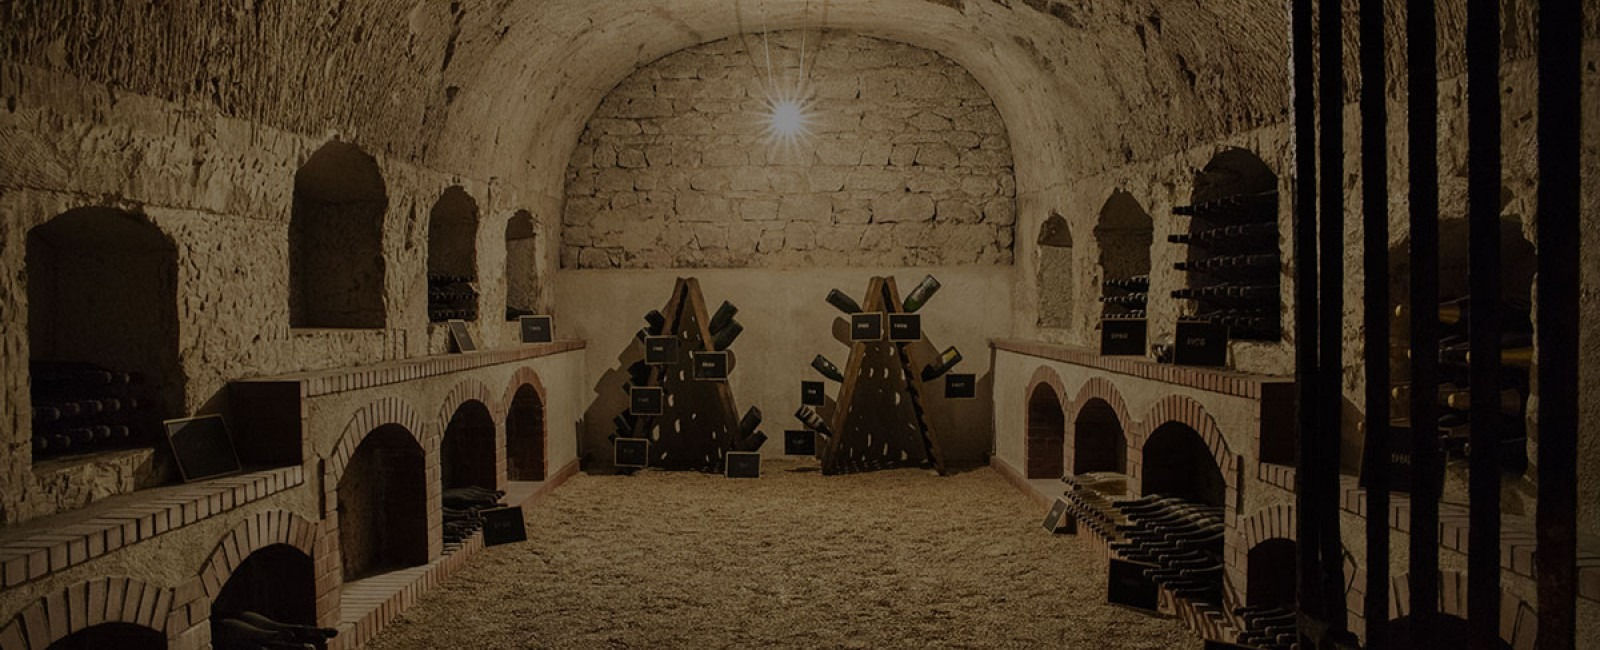 Champagne-perrier-jouet-caves